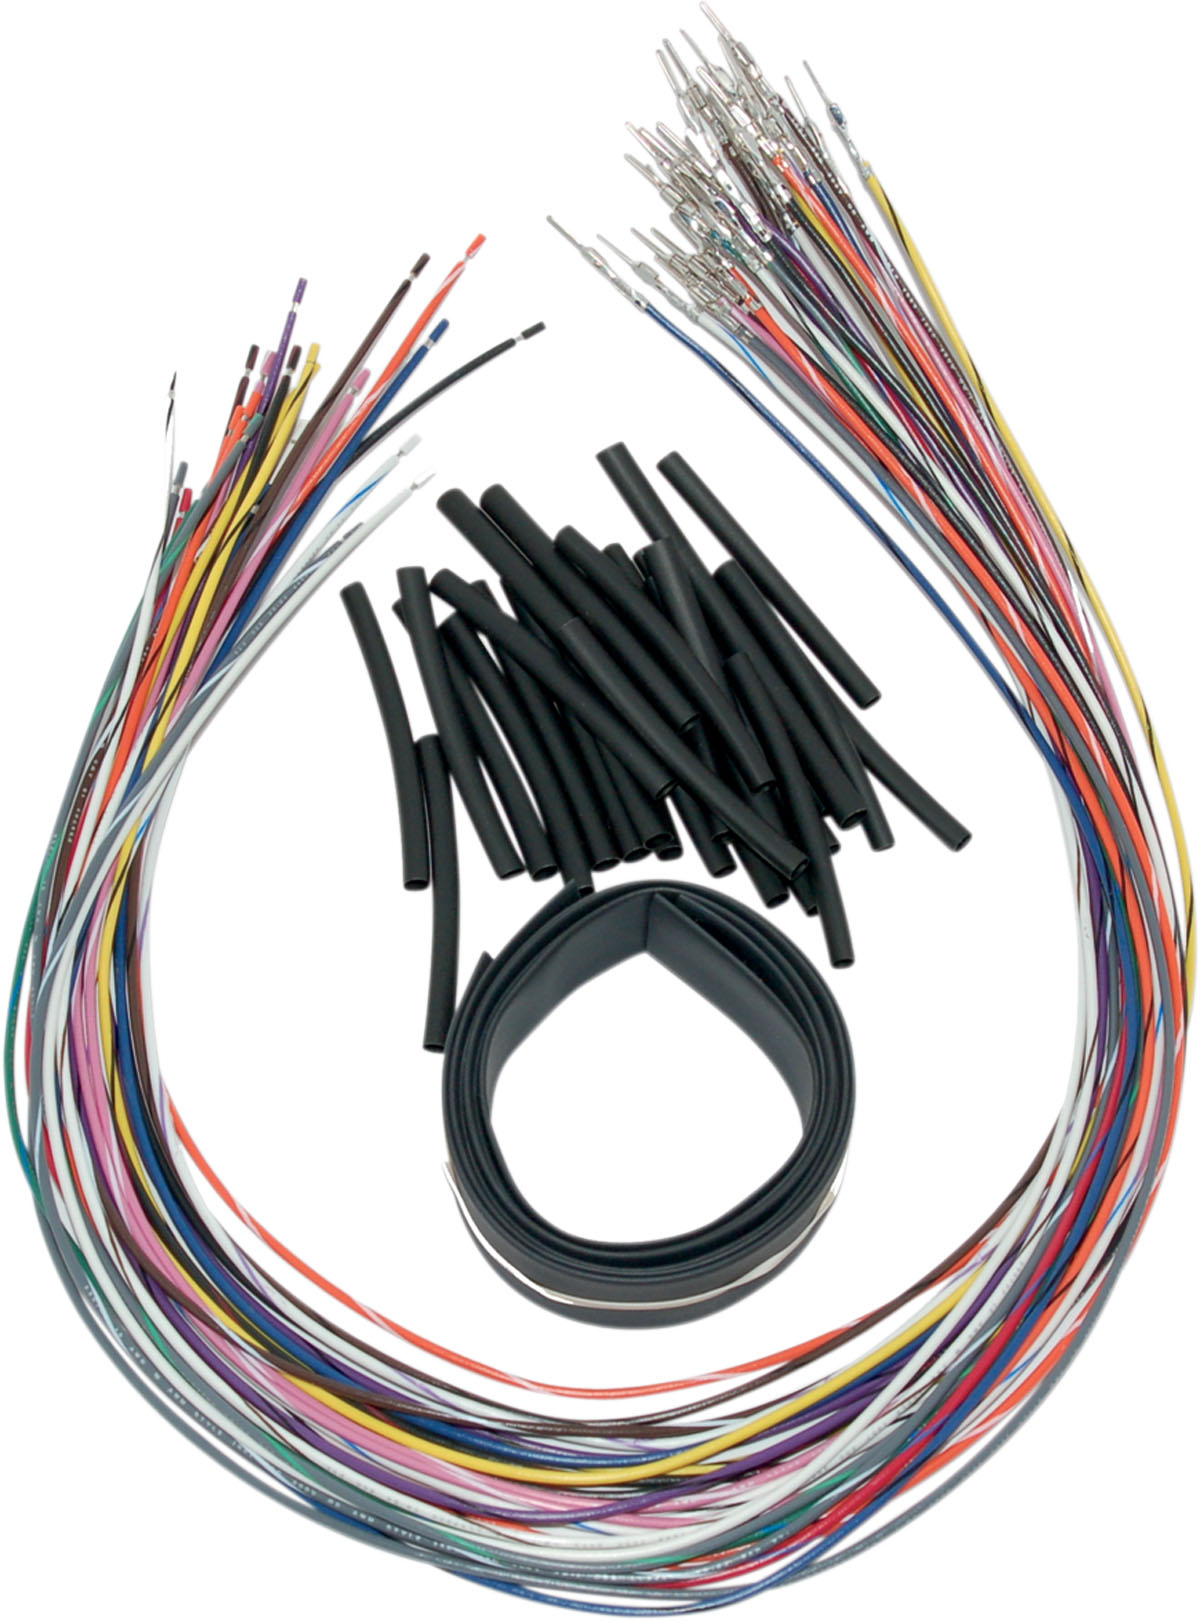 NAMZ (#NHCX-UMB) WIRE KIT EXT DIY 07-13FL (2120-0495) by